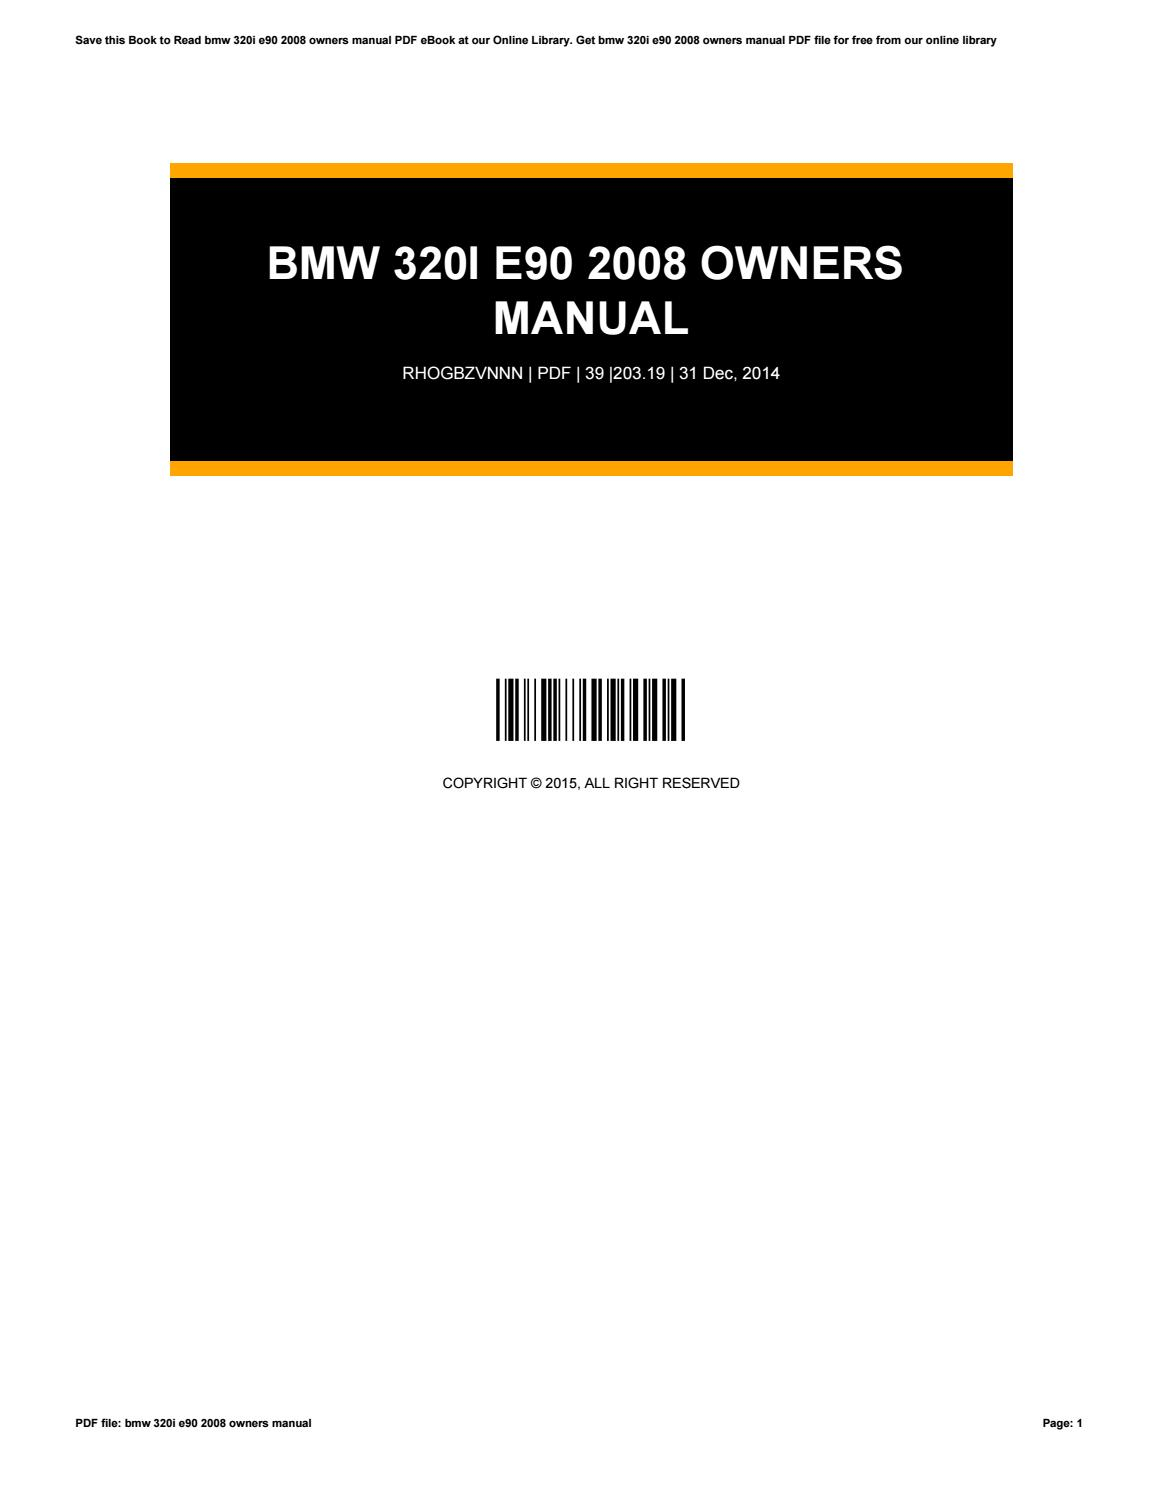 Bmw 320i E90 2008 Owners Manual By Angela Issuu